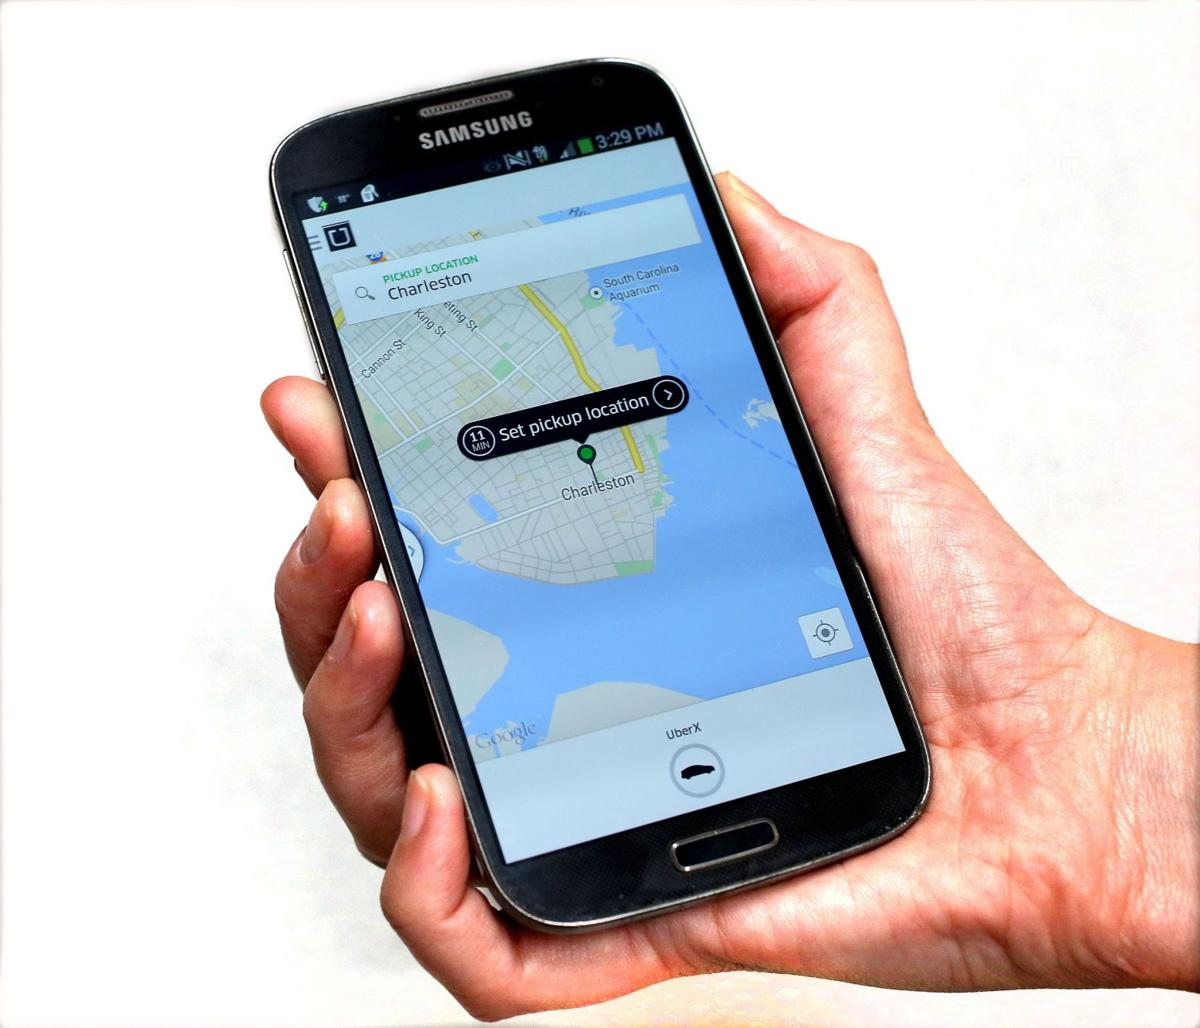 Uber launches partnership in South Carolina to curb drunk driving